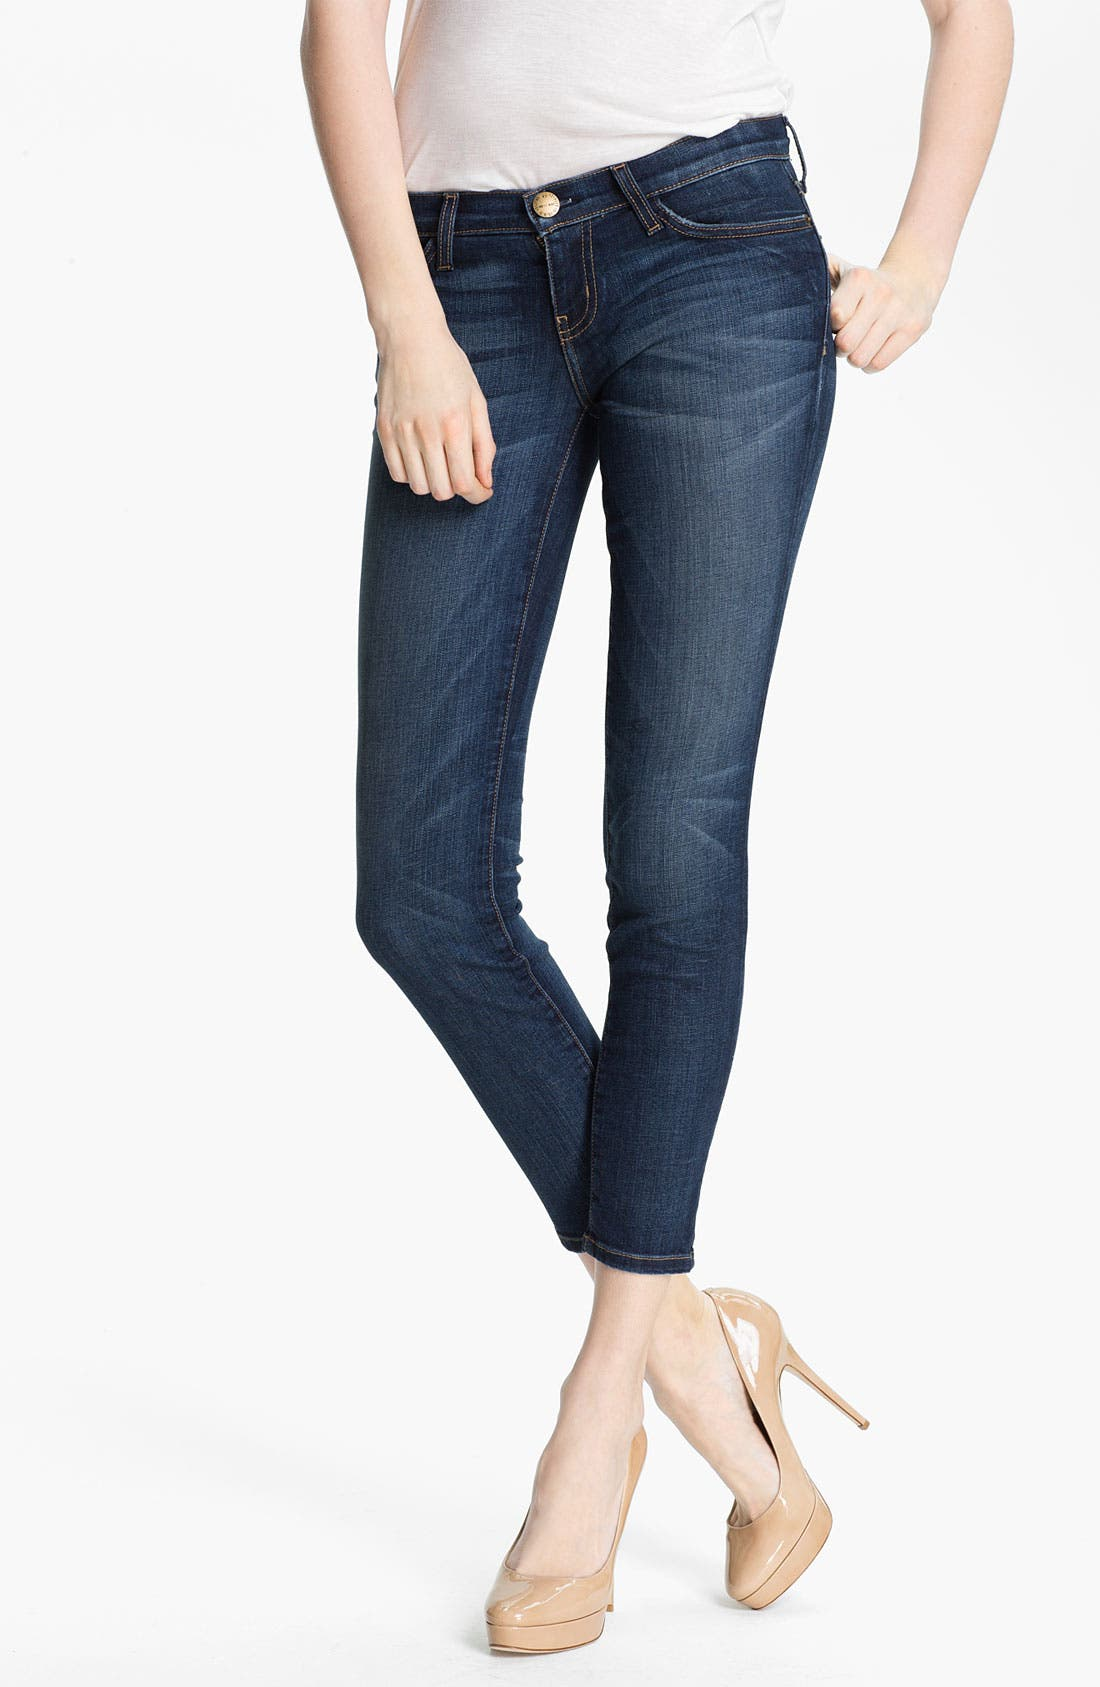 CURRENT/ELLIOTT 'The Stiletto' Stretch Jeans